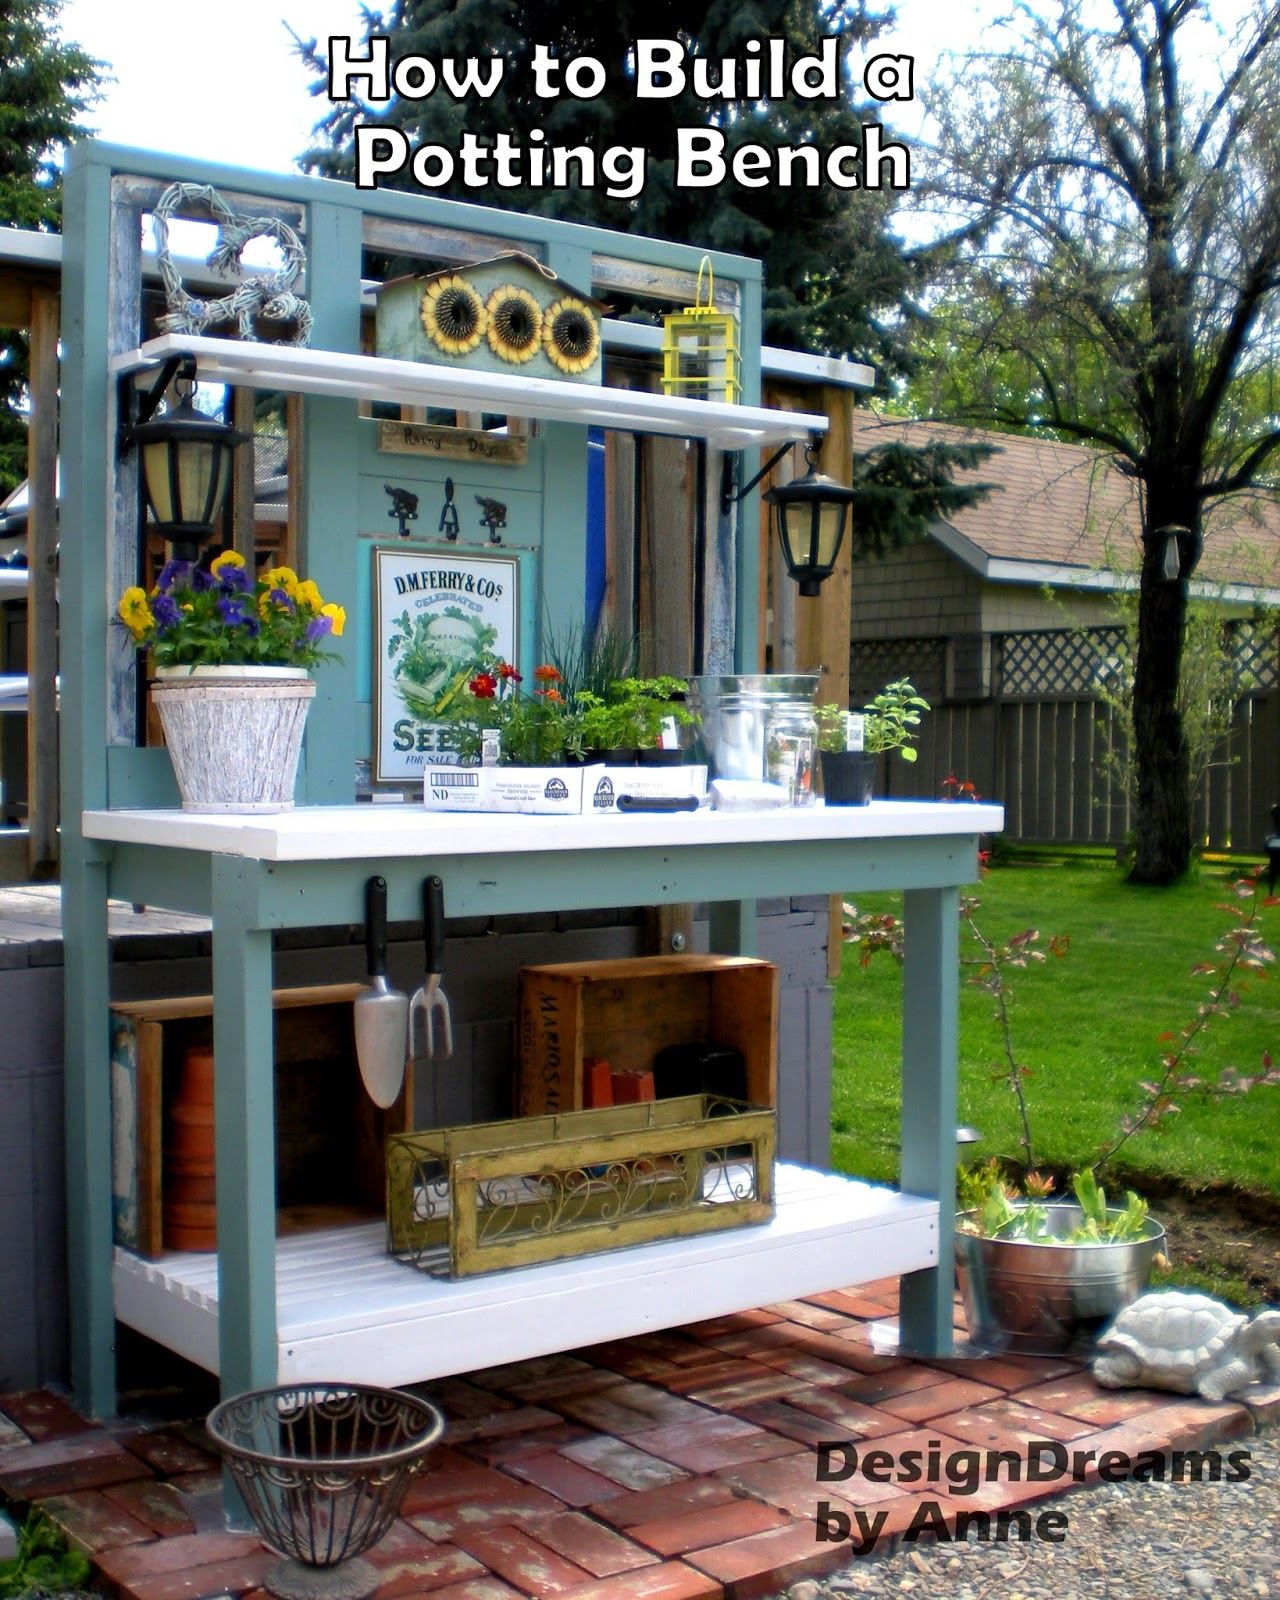 Designdreams by anne how to build a potting bench part i Potting bench ideas